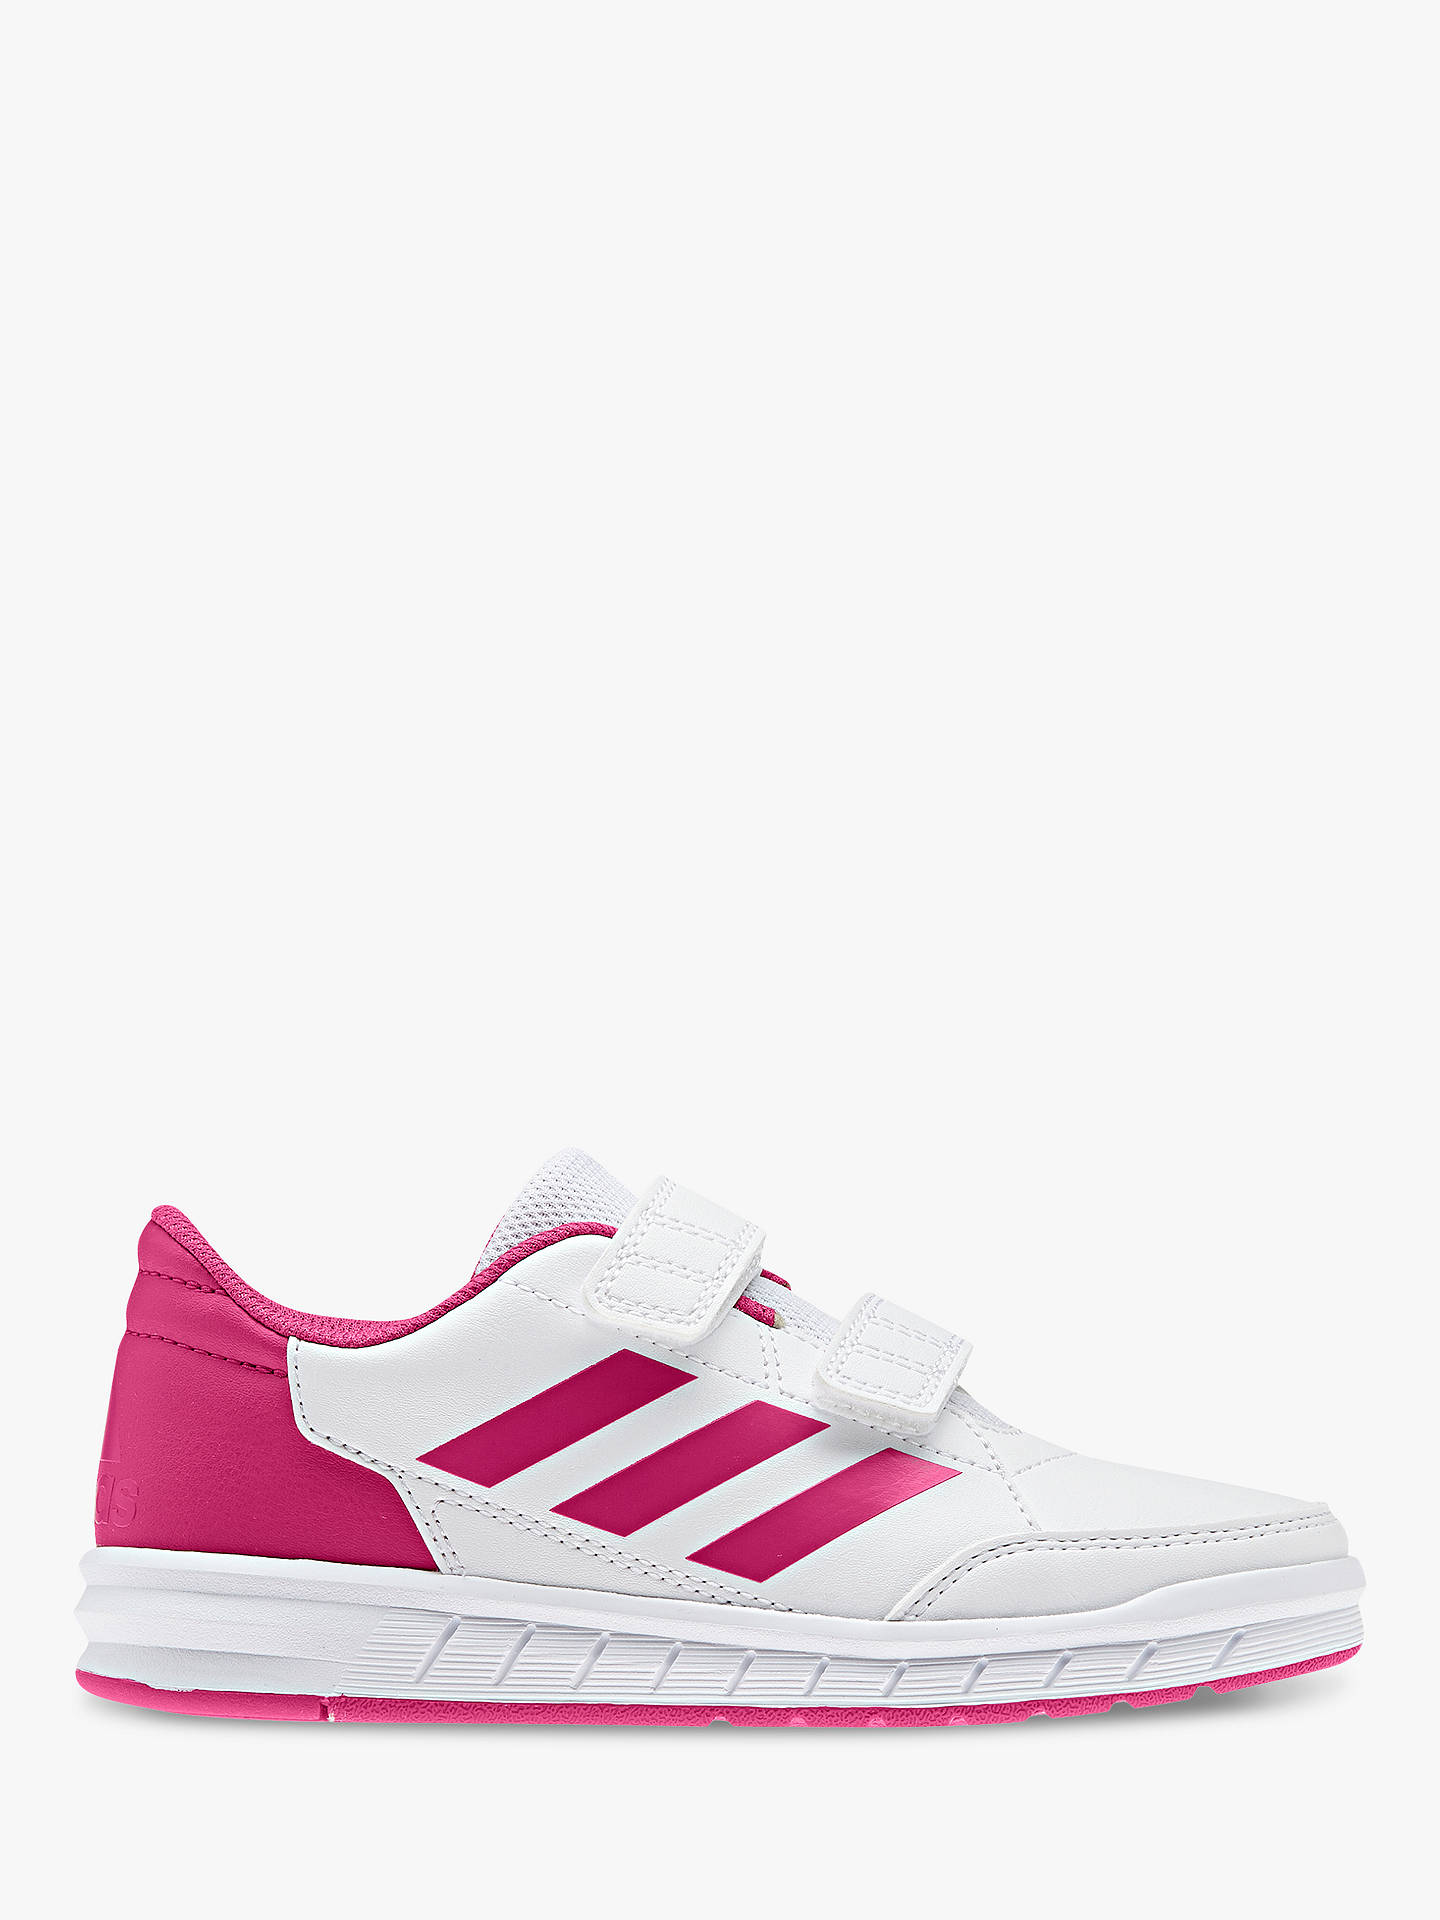 Buyadidas Junior Alta Sport CF K Rip-Tape Trainers, White/Pink, 10 Jnr Online at johnlewis.com